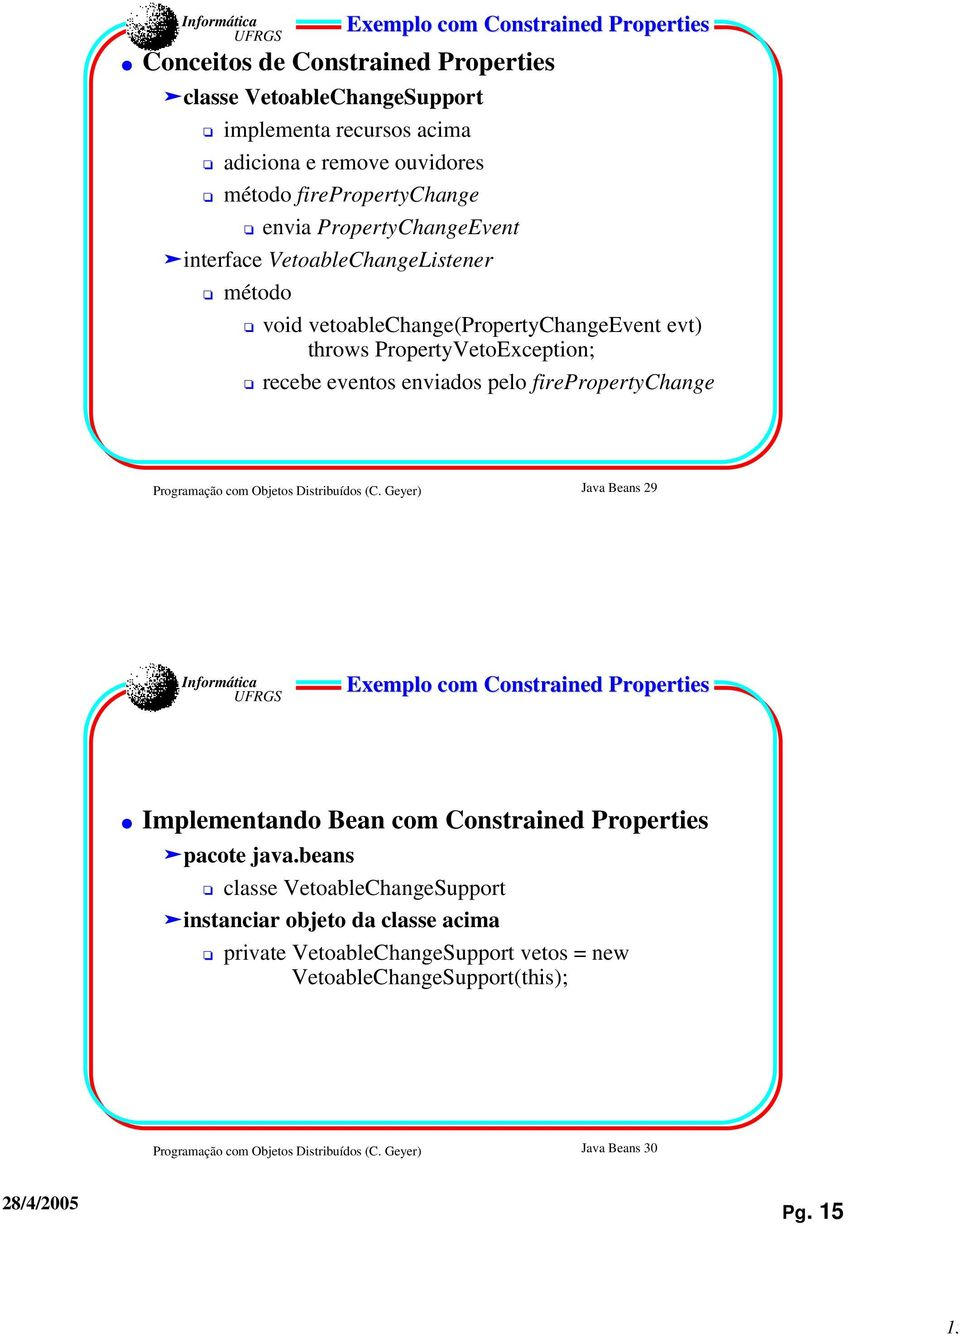 firepropertychange Programação com Objetos Distribuídos (C. Geyer) Java Beans 29 Exemplo com Constrained Properties Implementando Bean com Constrained Properties pacote java.